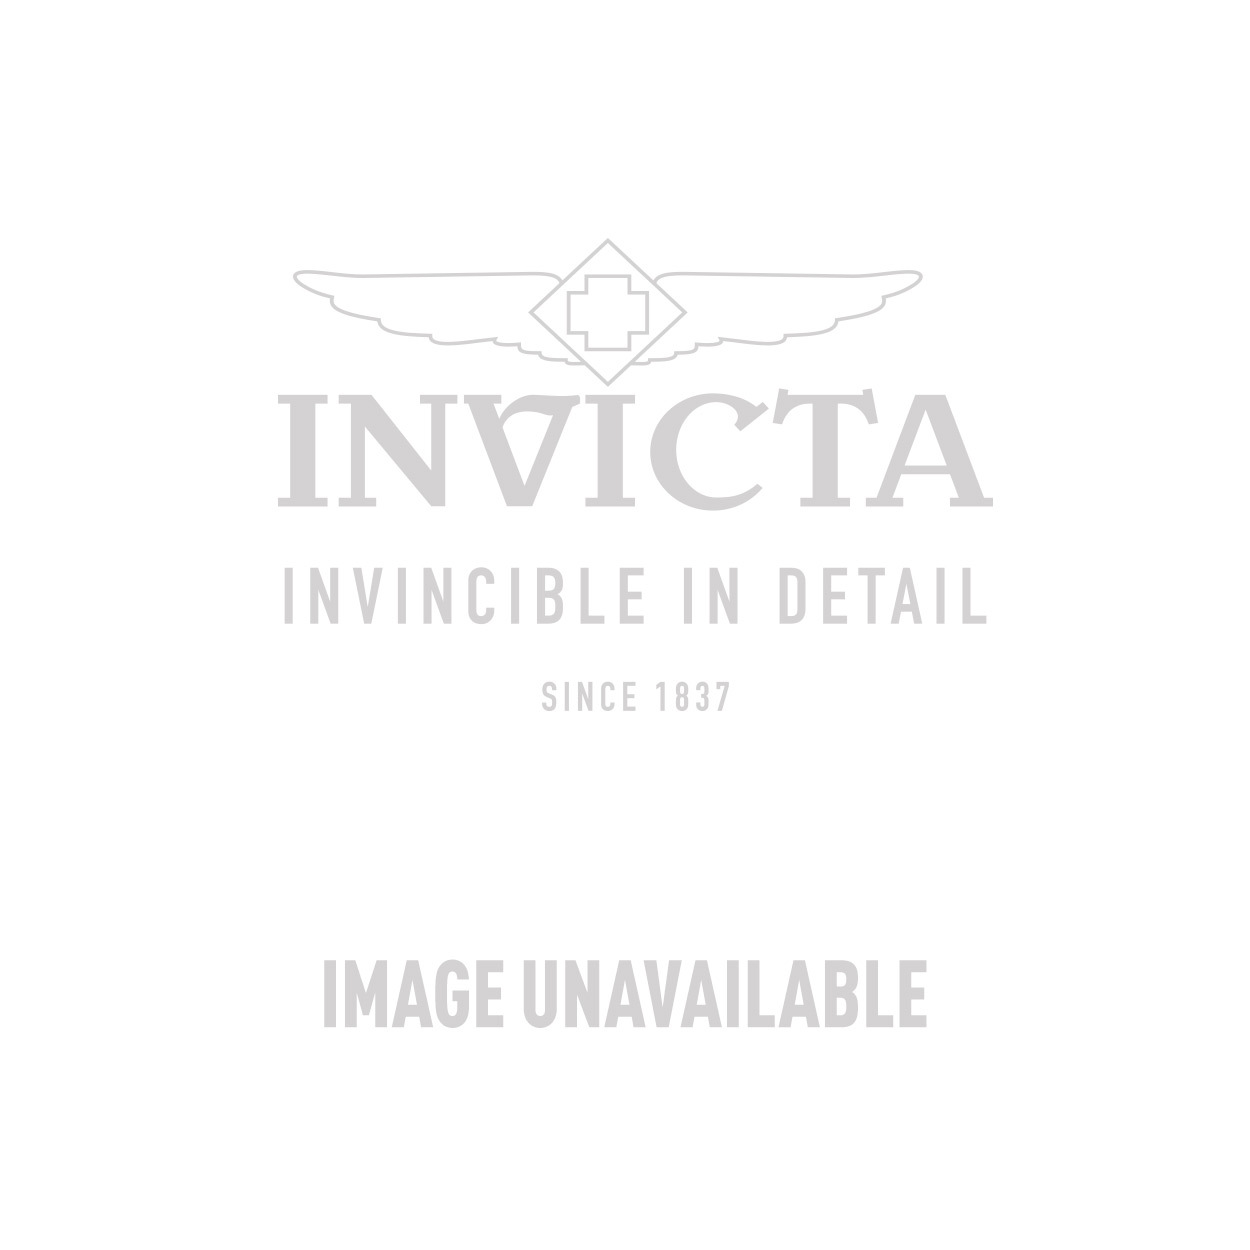 Invicta Vintage  Quartz Watch - Black, Stainless Steel case Stainless Steel band - Model 10751